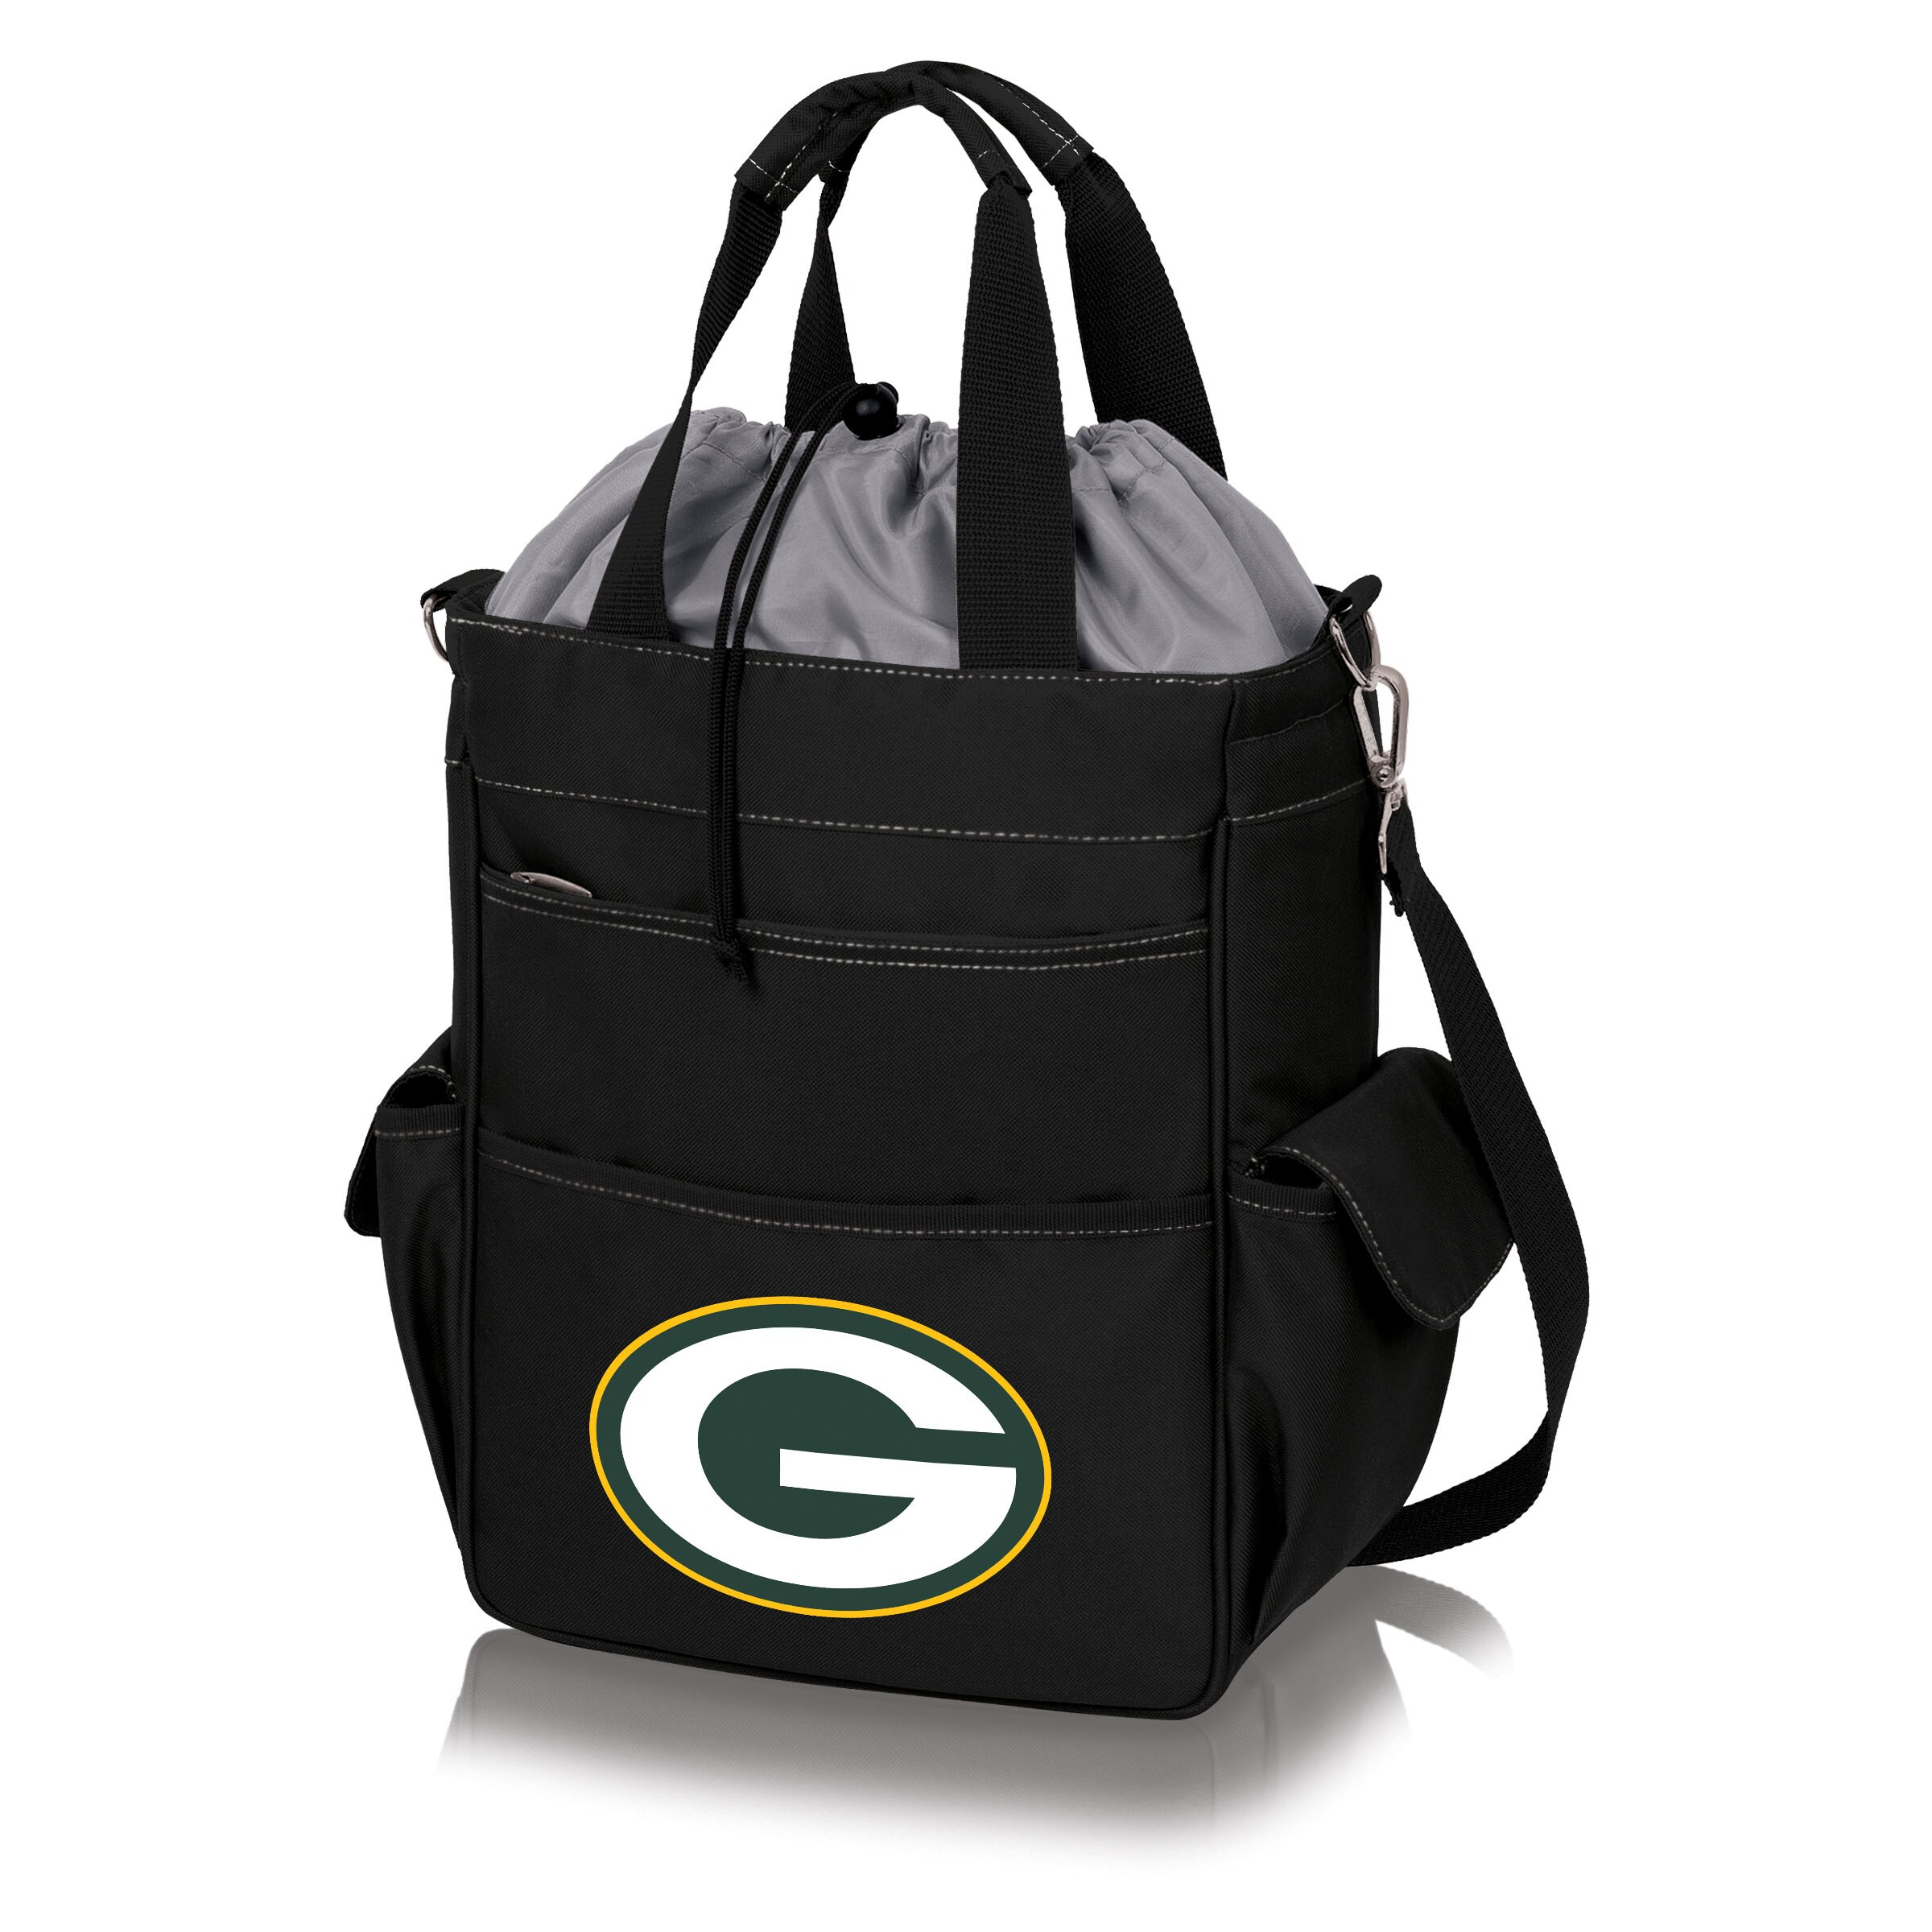 Green Bay Packers Activo Cooler Tote - Black